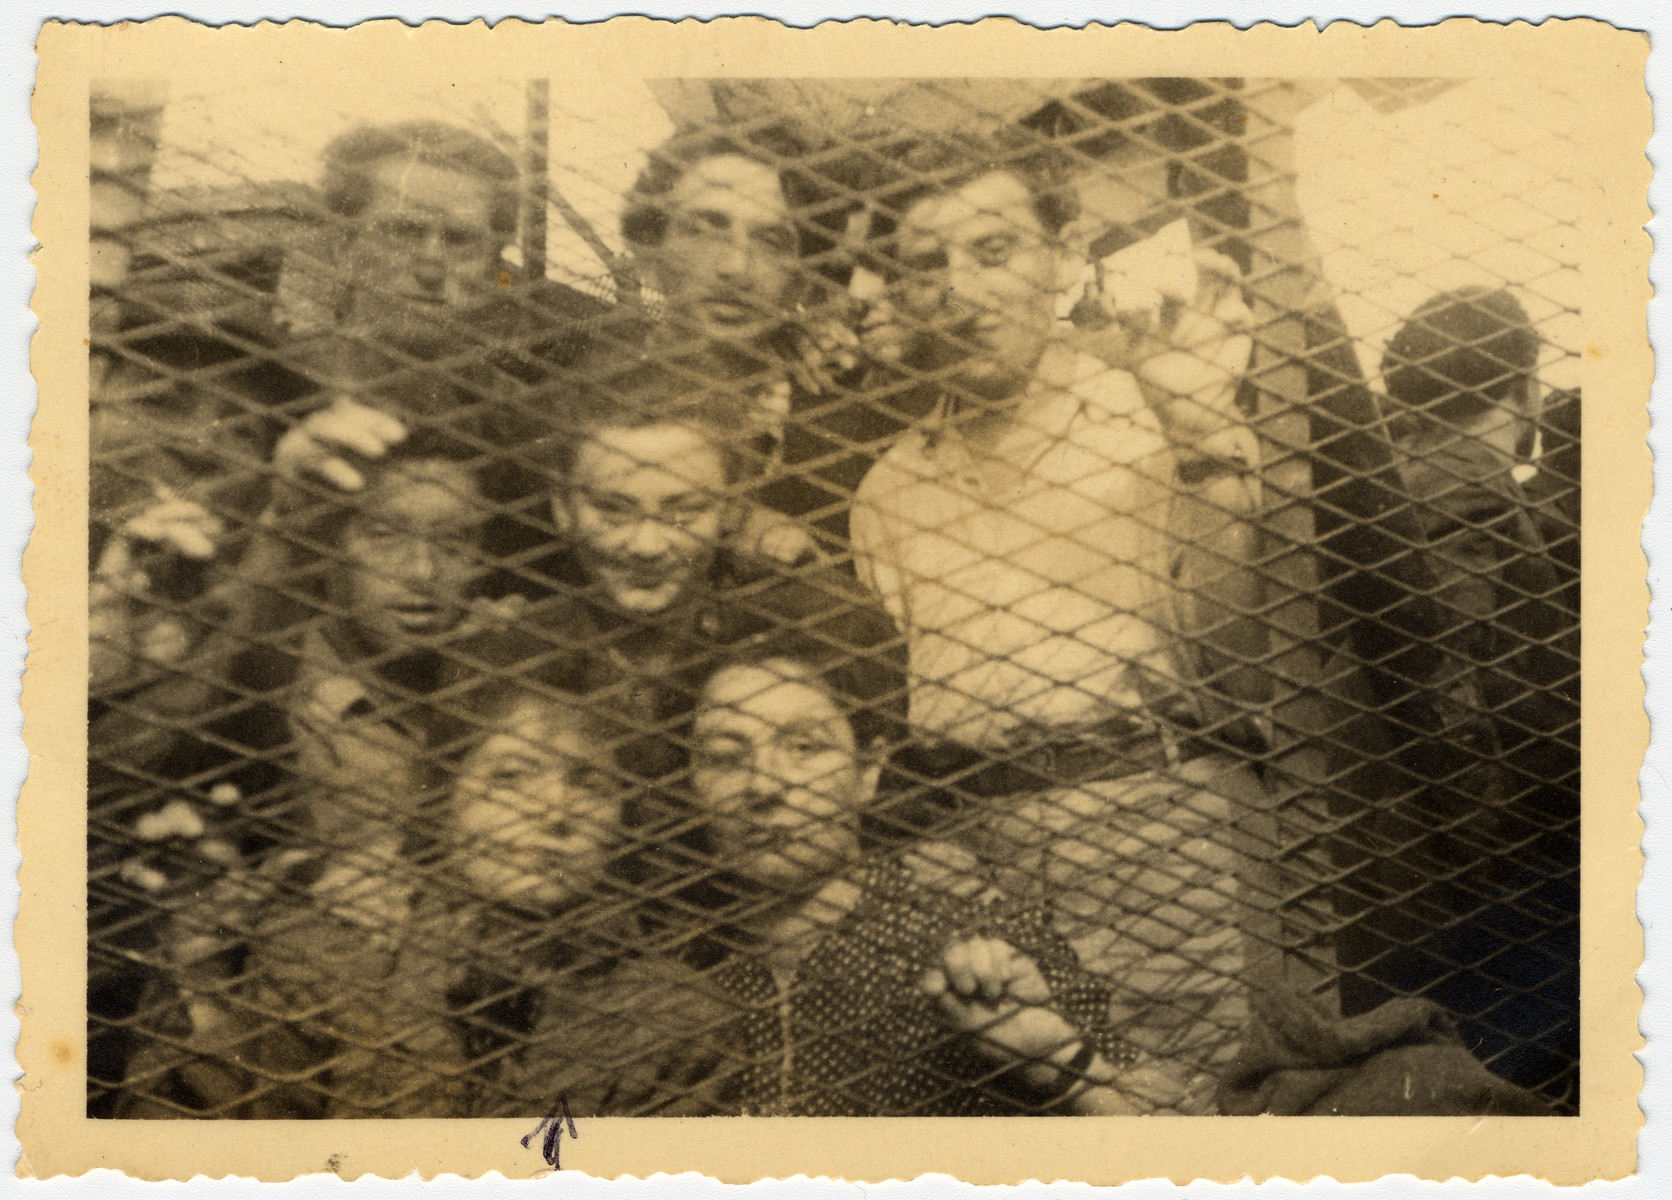 A group of passengers from the Exodus peers out behind a wire fence [probably in Haifa harbor].  Among those pictured is Rachel Krygier.